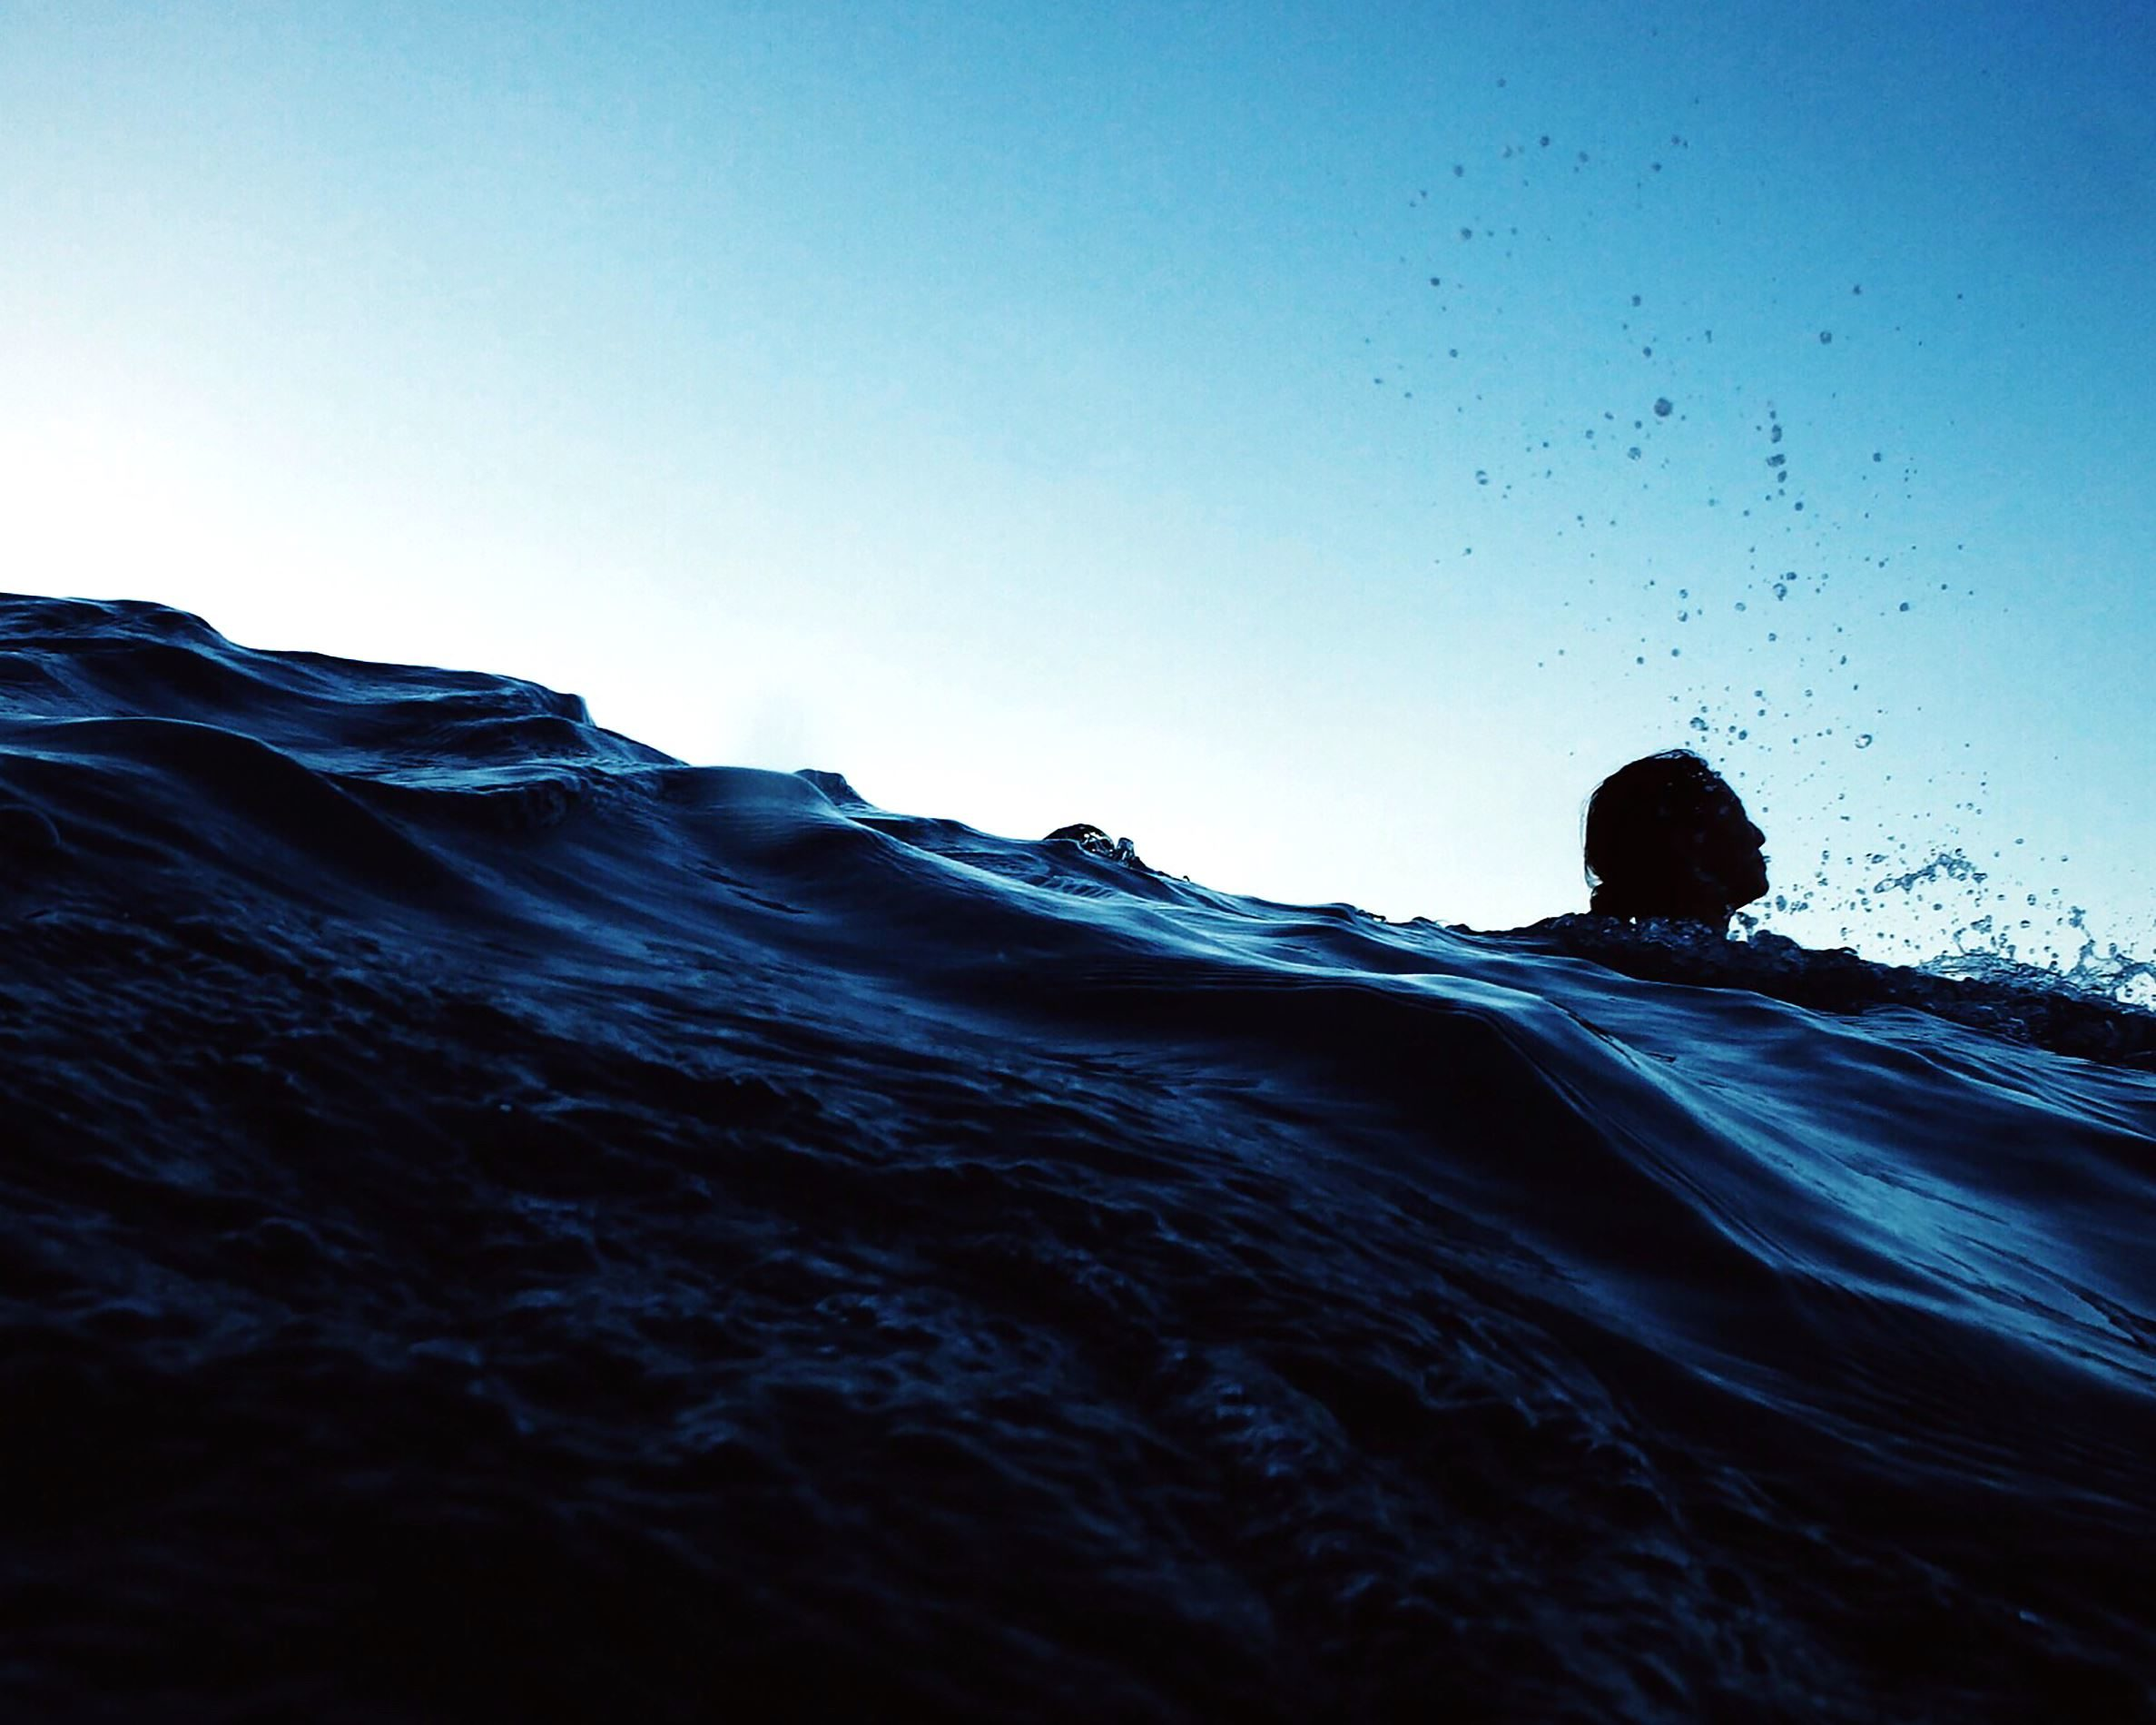 Free picture: sea, person, silhouette, swimming, waves, water, sky